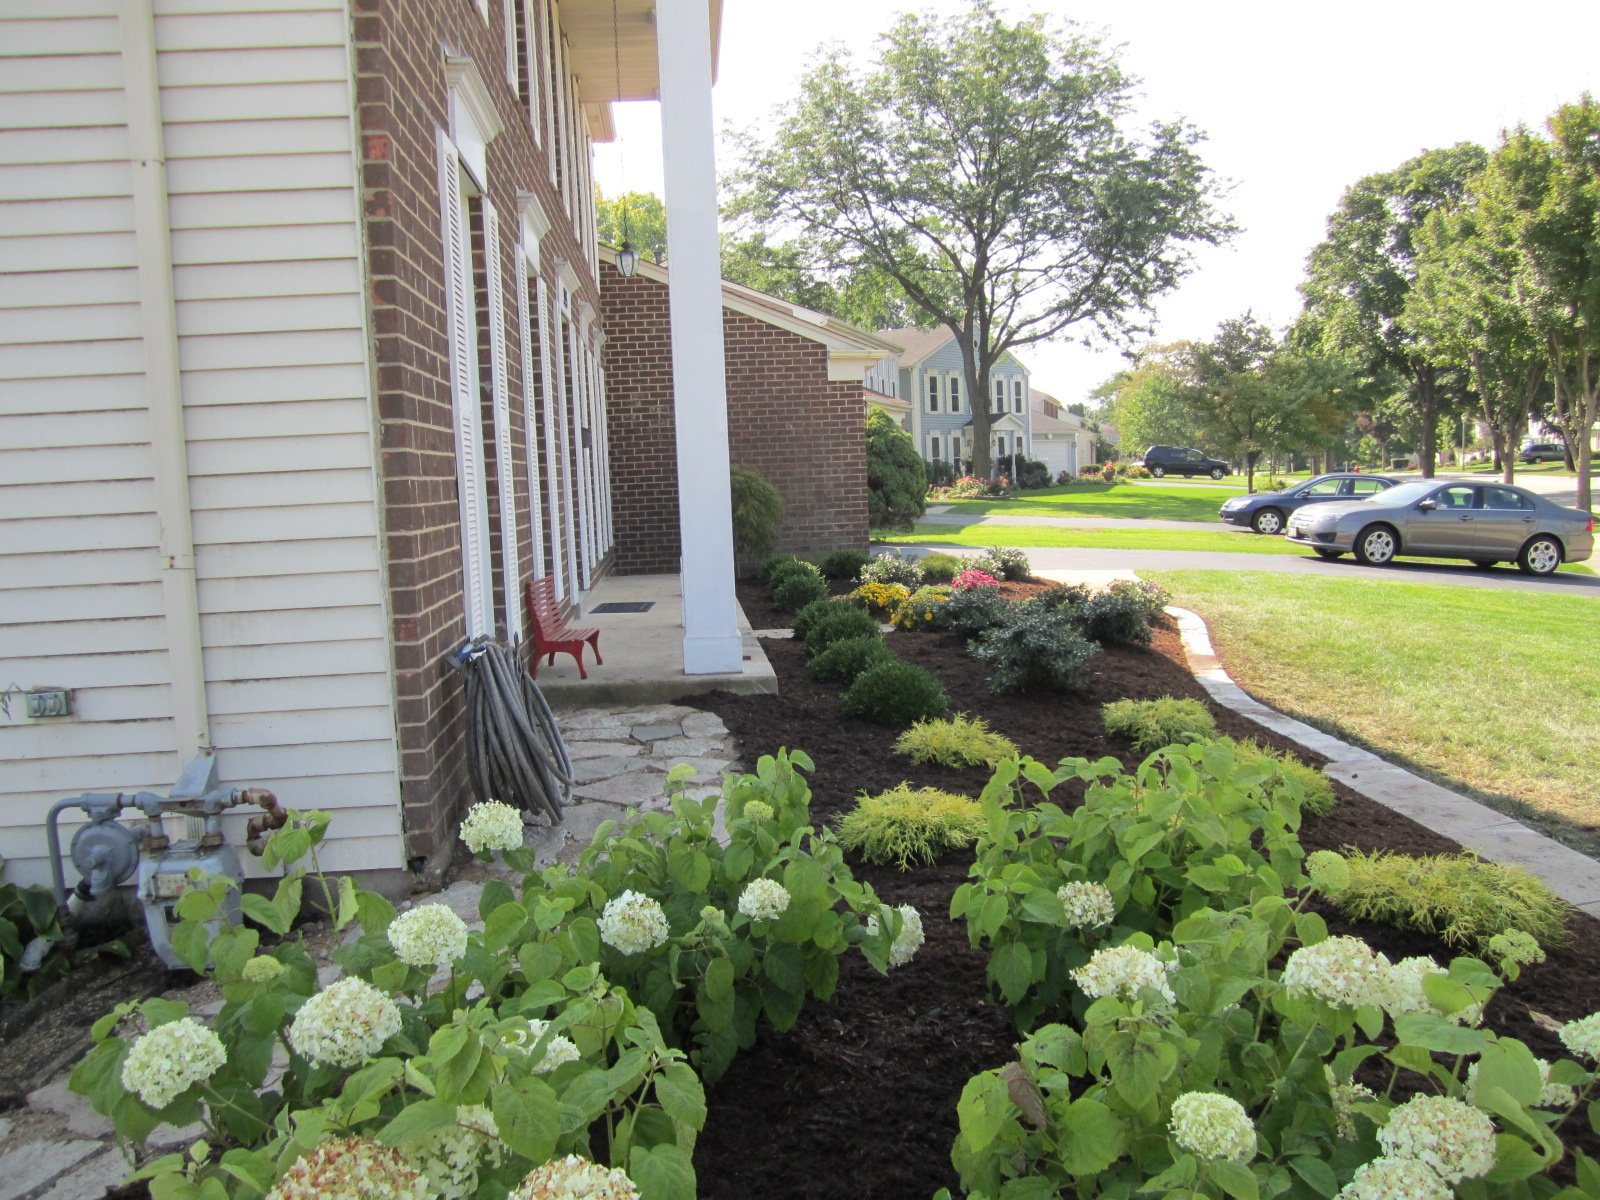 Anns Landscaping image 5